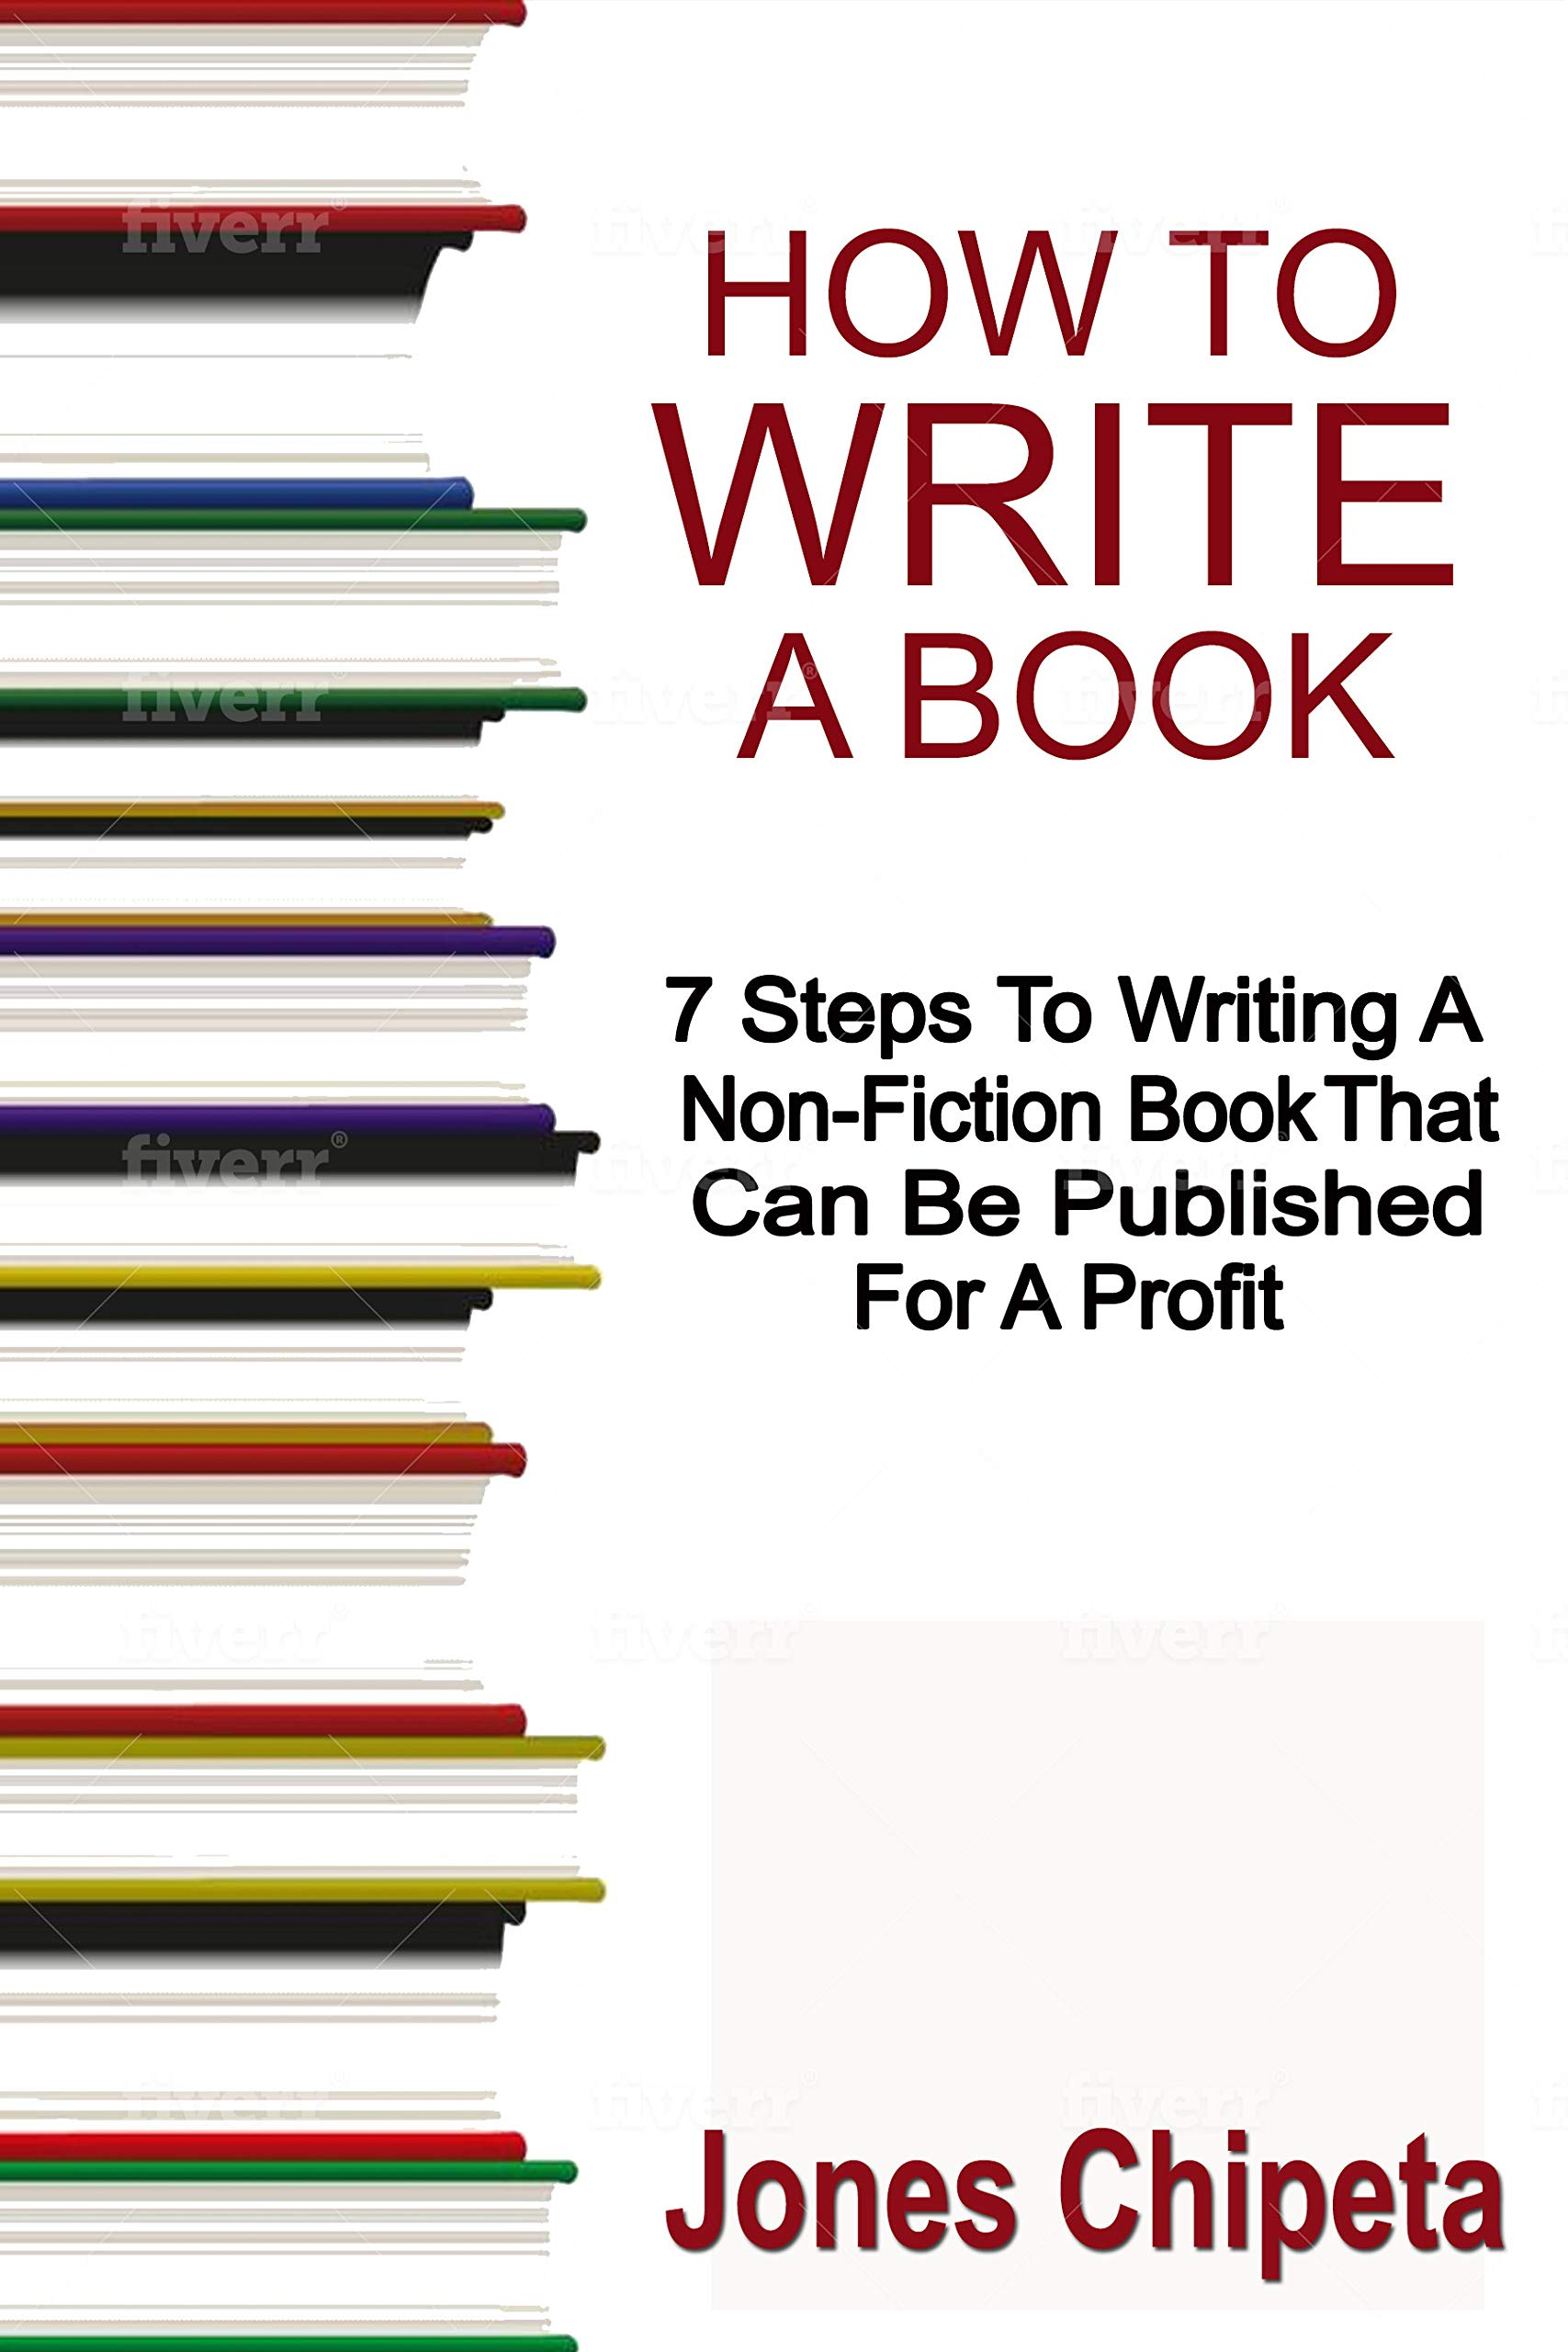 How to Write a Book: 7 Steps To Writing A Non-Fiction Book That Can Be Published For A Profit